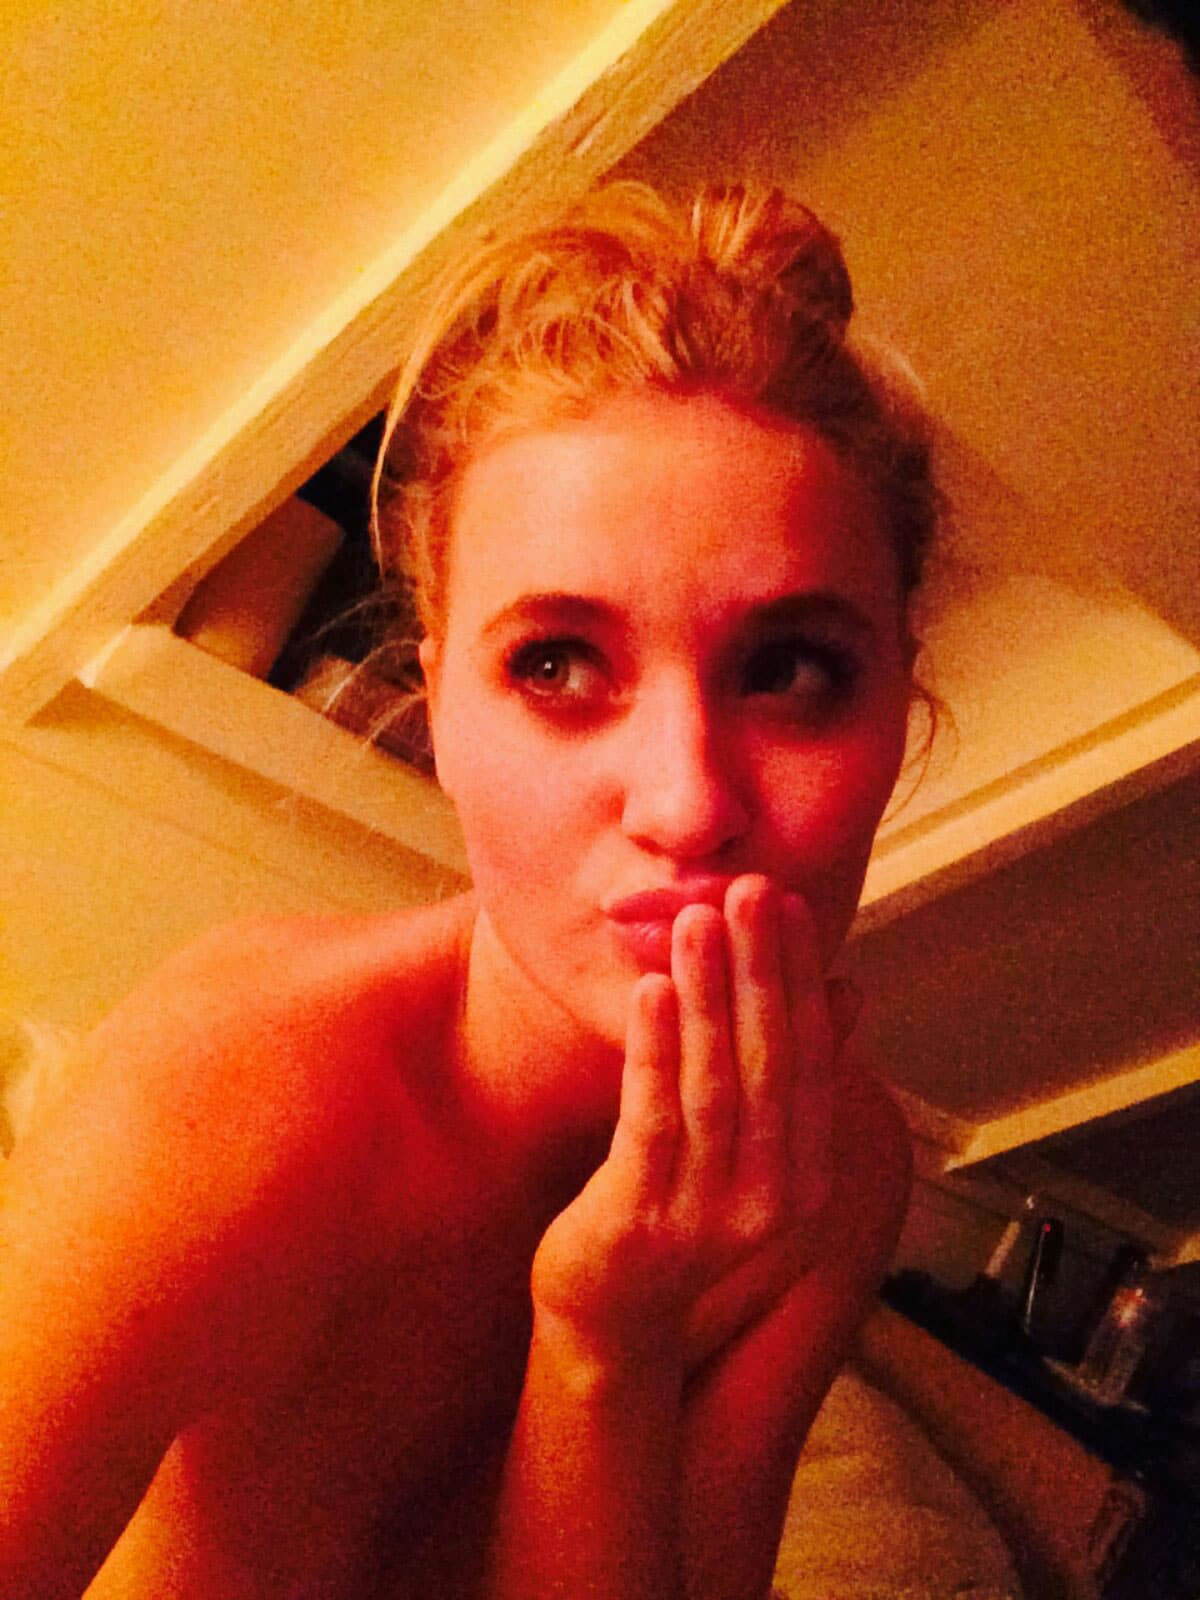 AJ Michalka taking a selfie with her hair in a bun putting hand over mouth